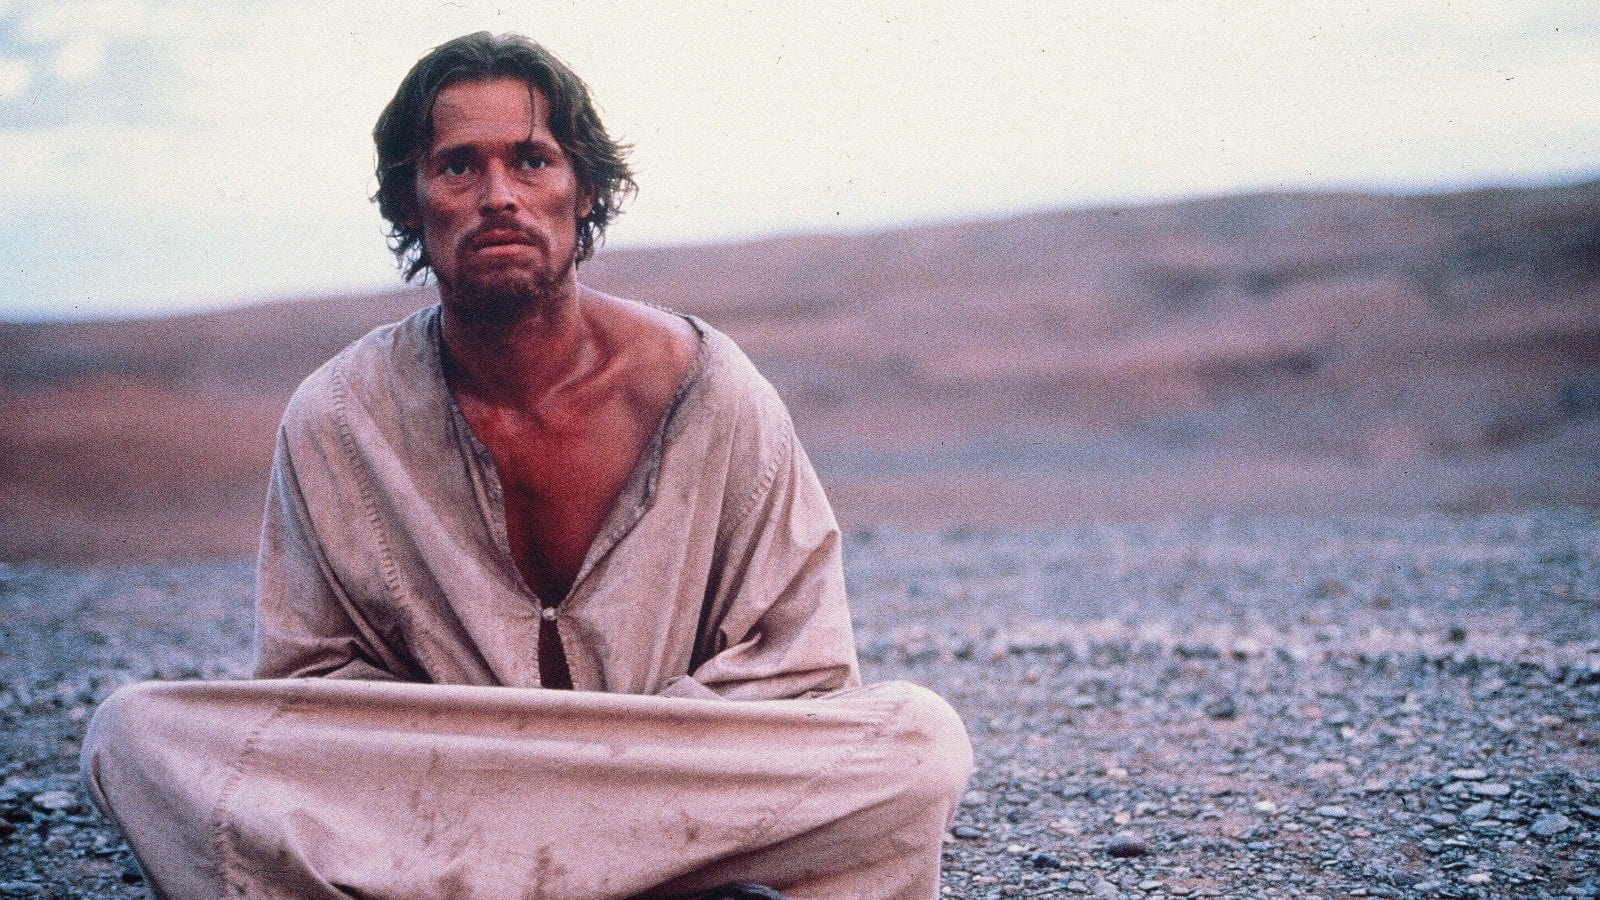 Jesus, looking haggard, sits alone in the desert